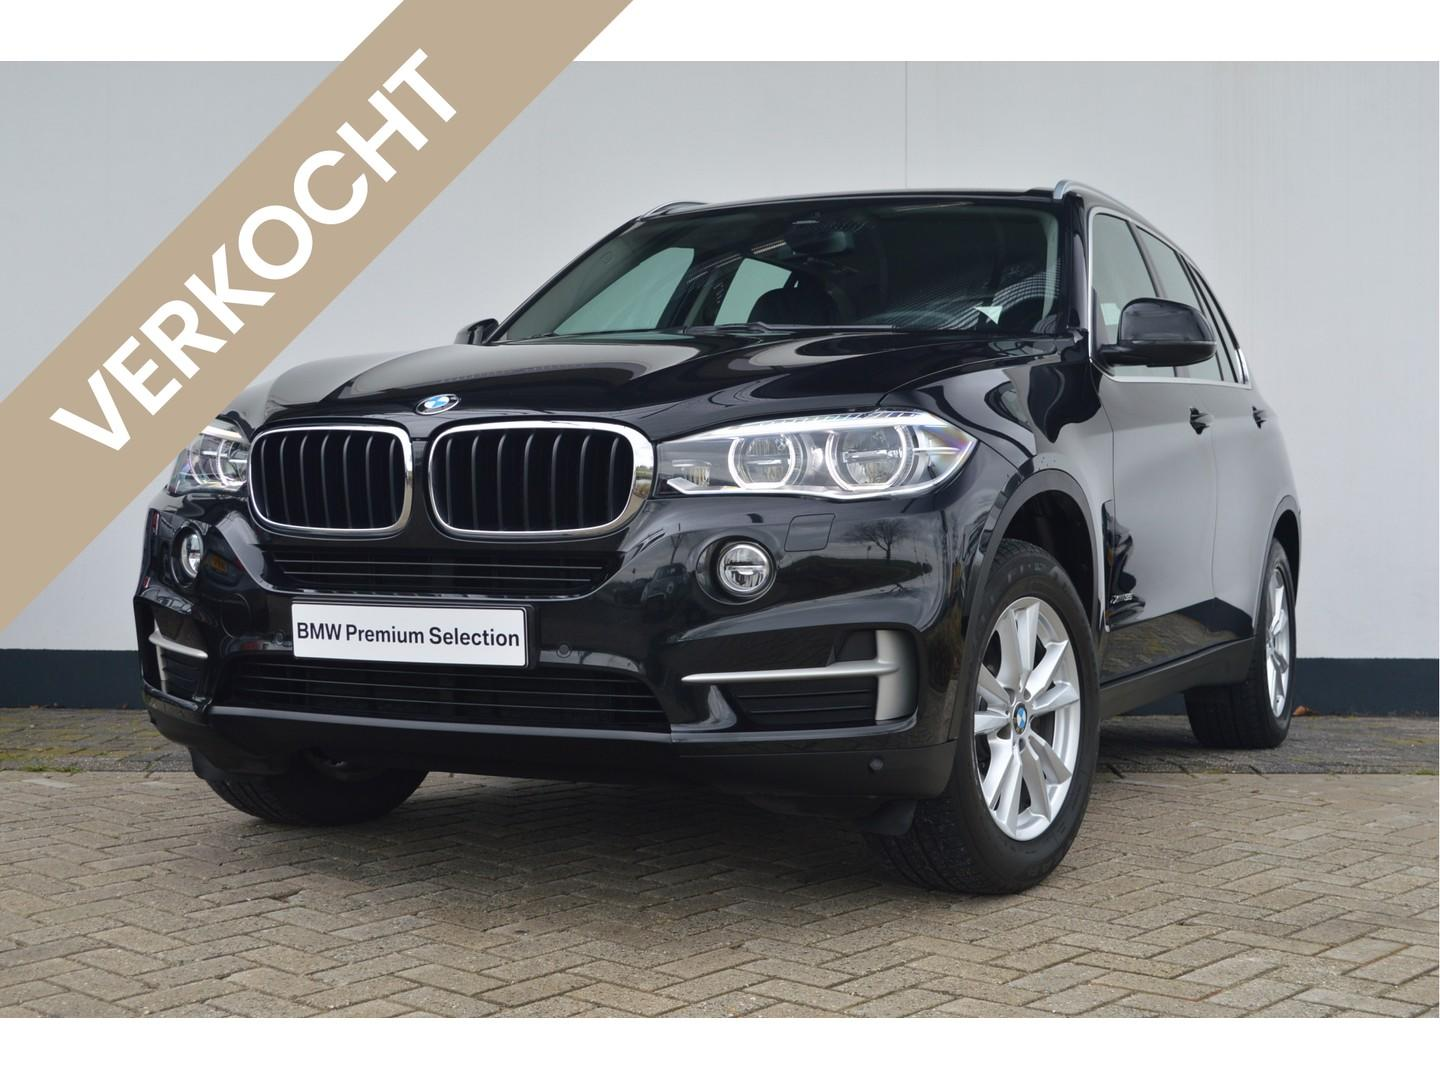 Bmw X5 Xdrive35i high executive